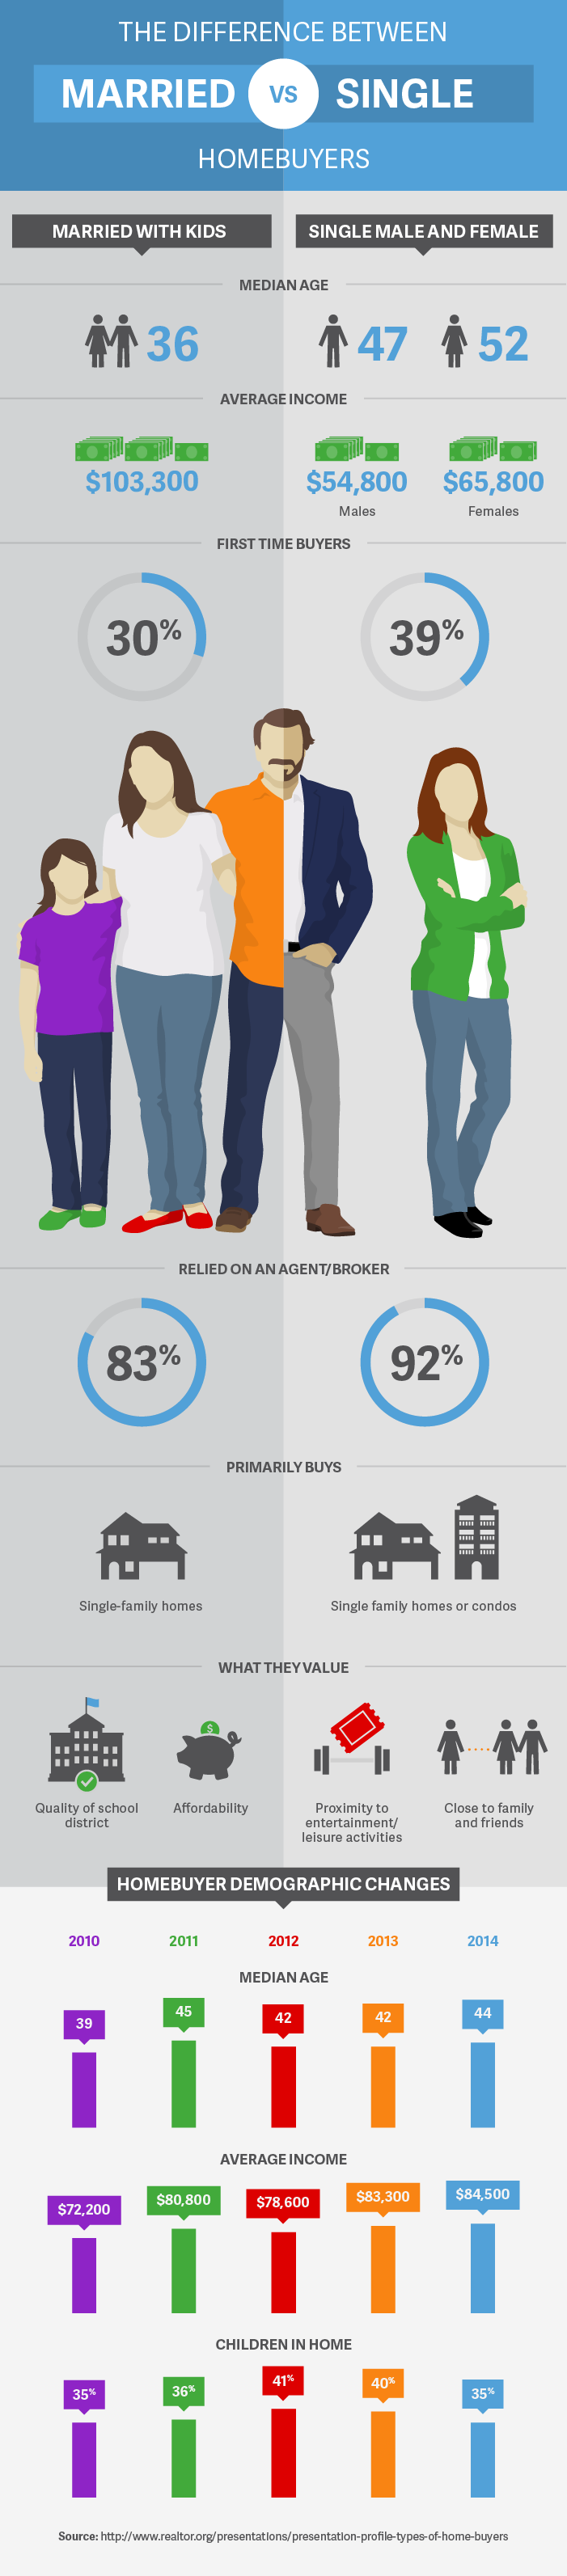 homebuyer-differences